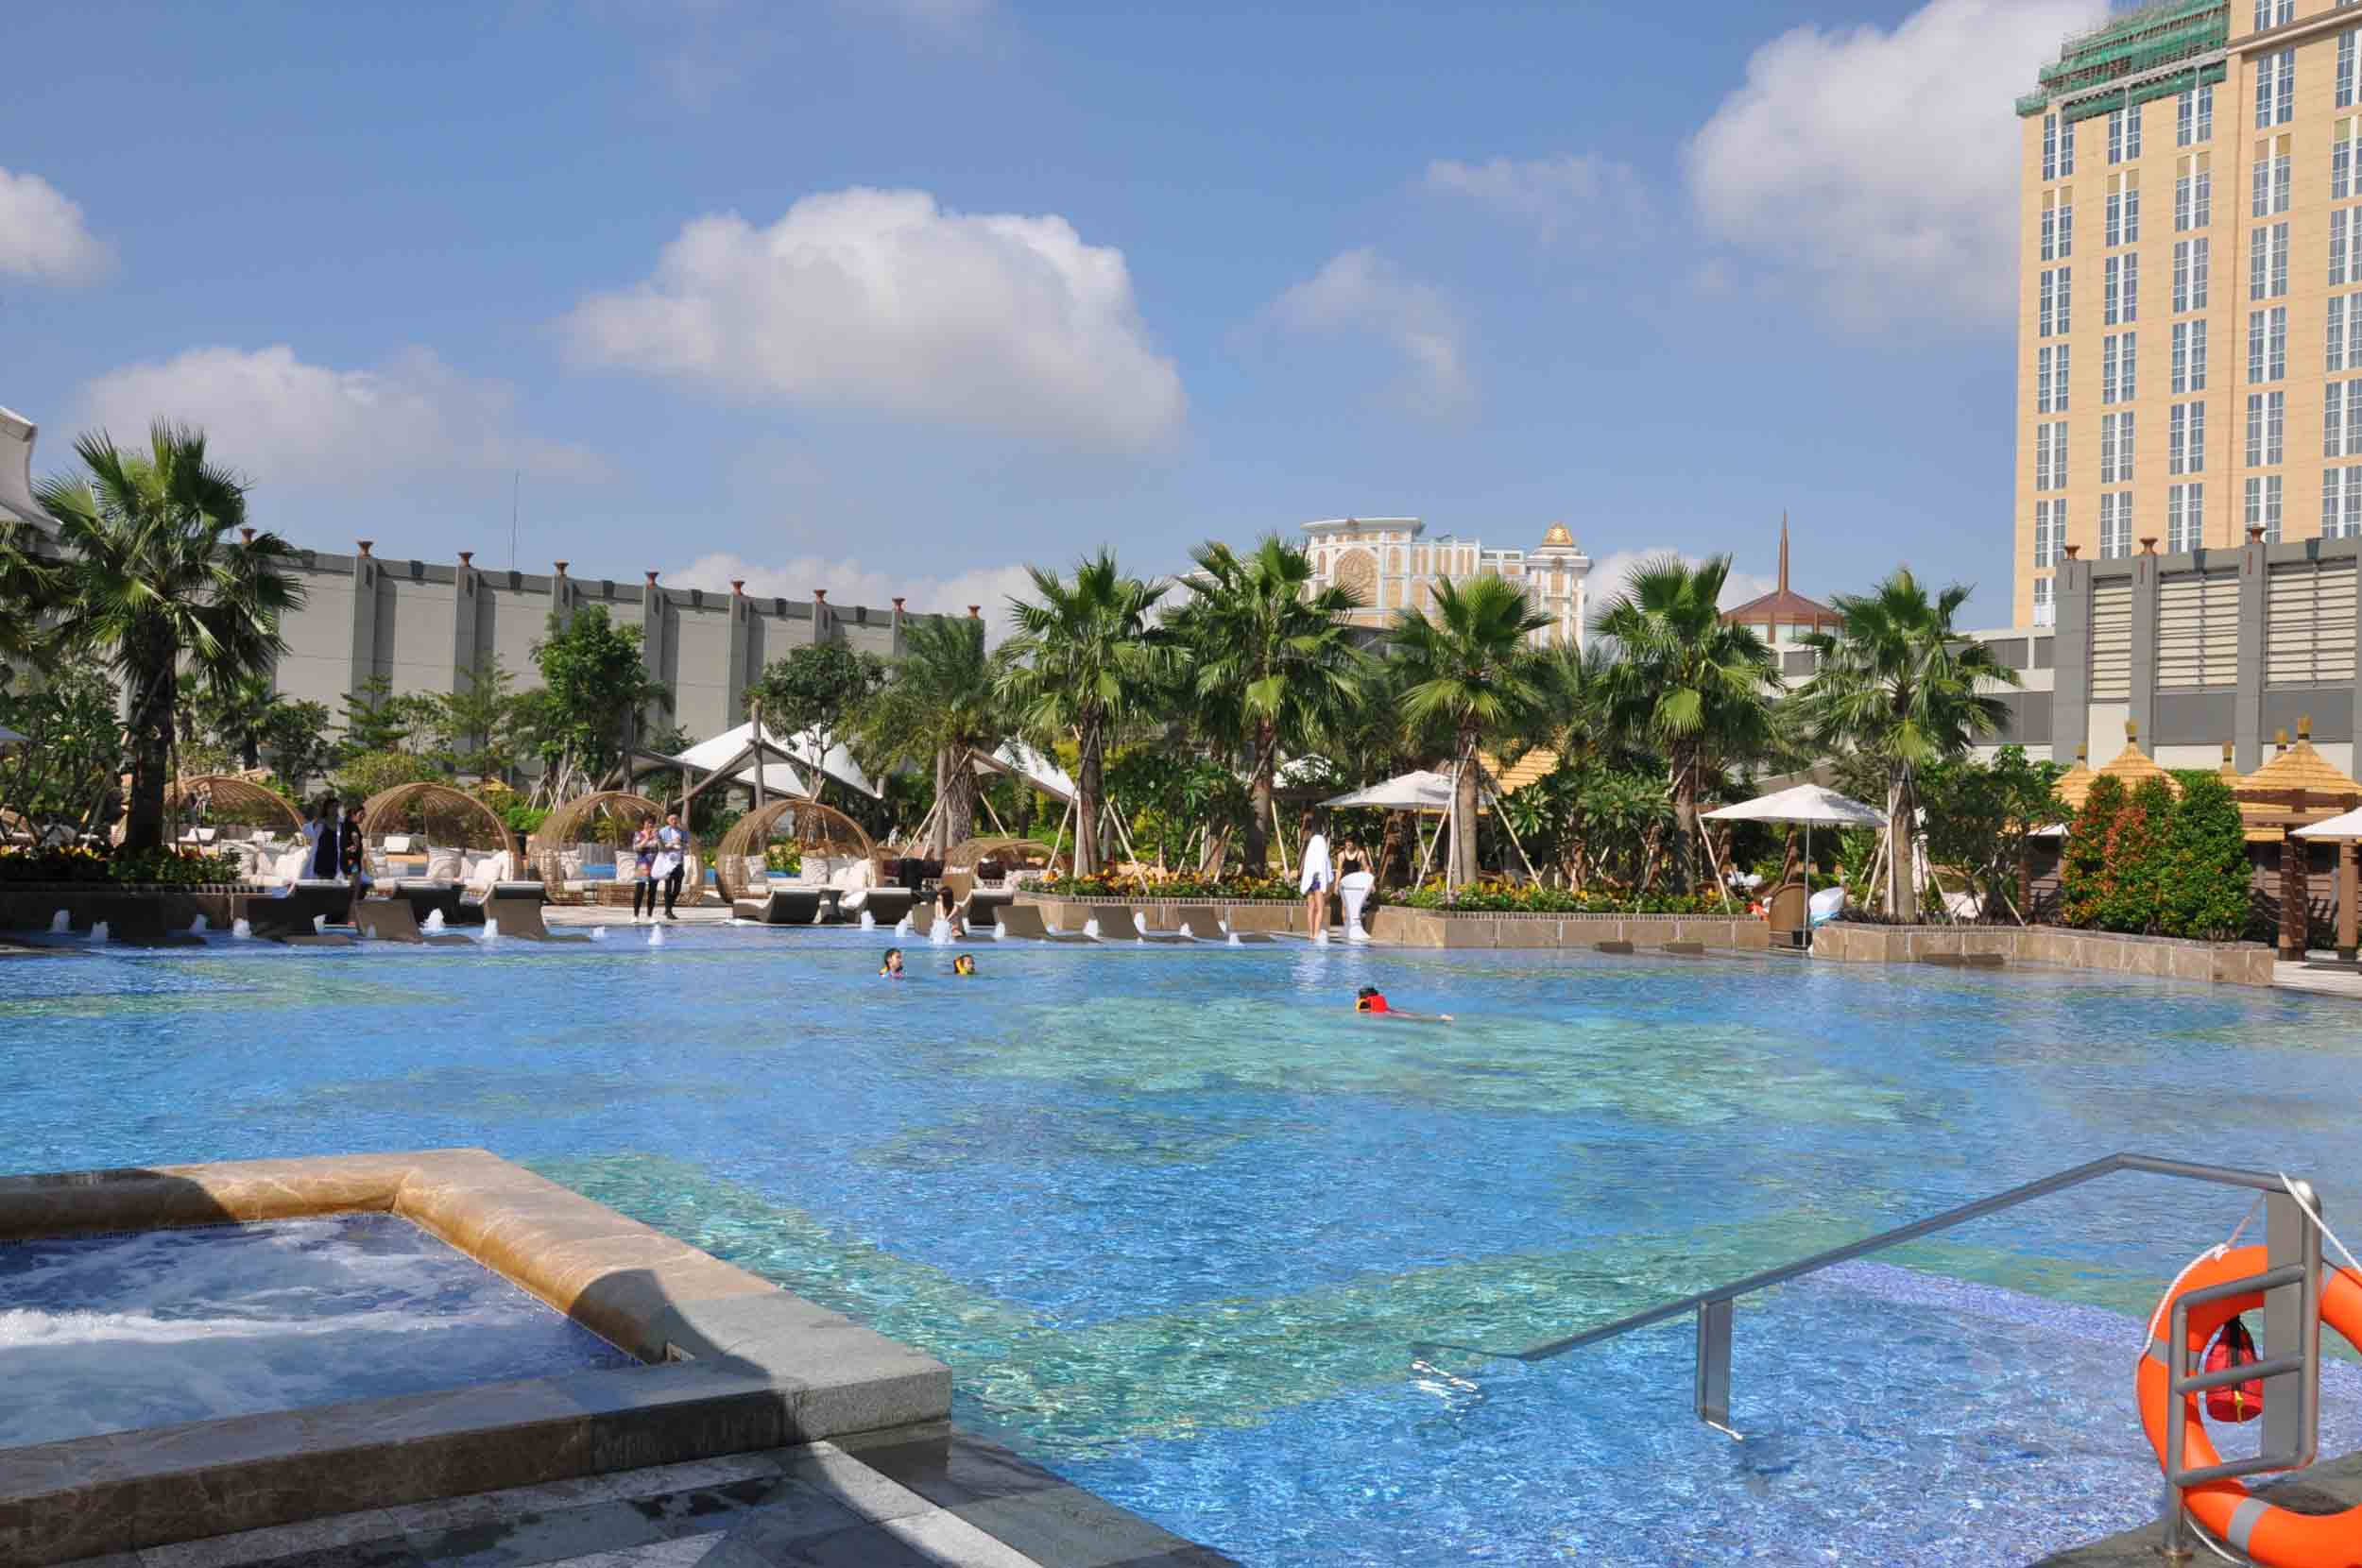 Studio City Macau outdoor pool